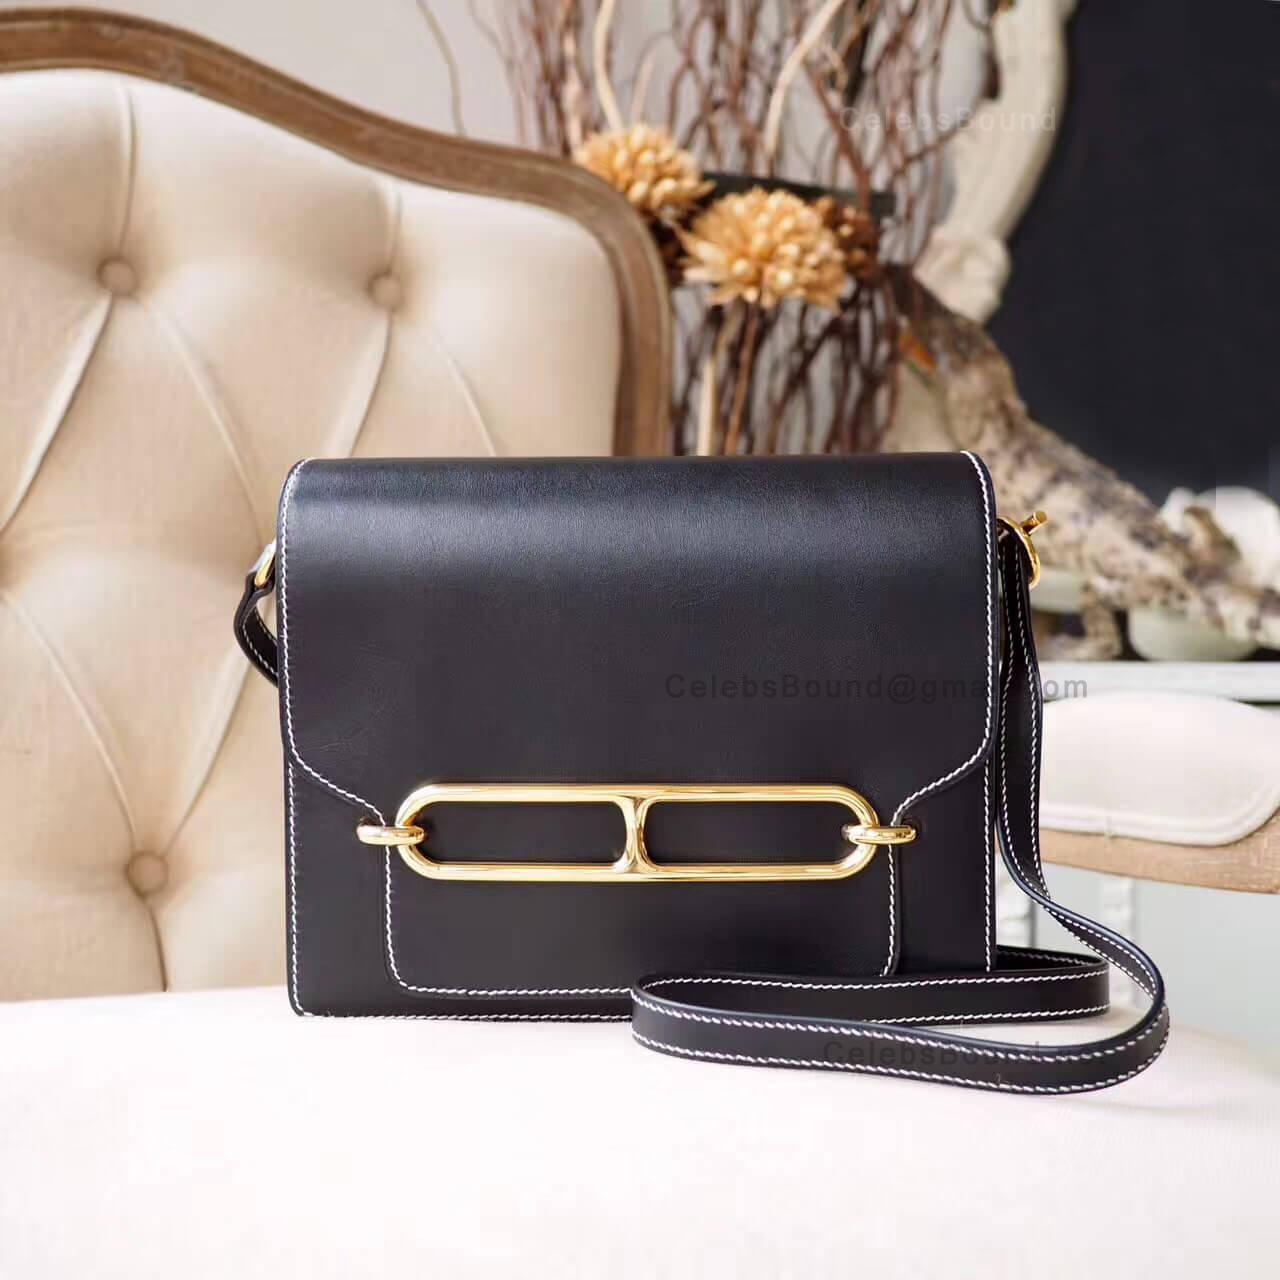 22b3dfe974b6 Hermes Roulis 23 White Stitching Bag in ck89 Noir Evercolor GHW